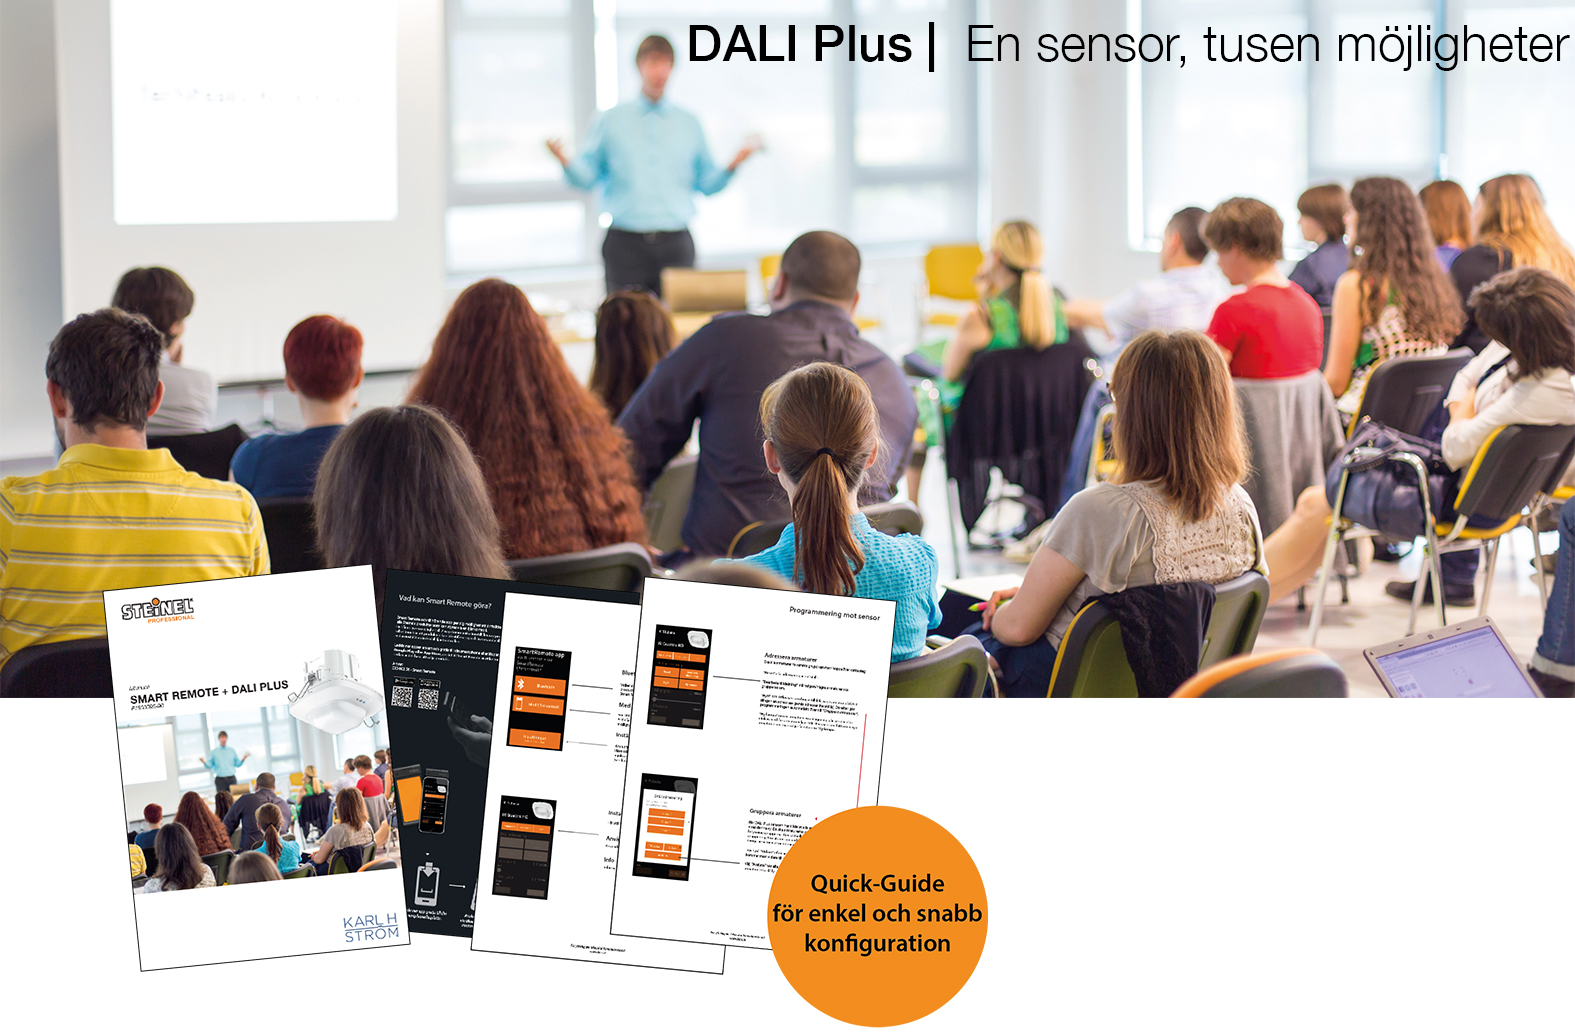 DALI Plus support sida